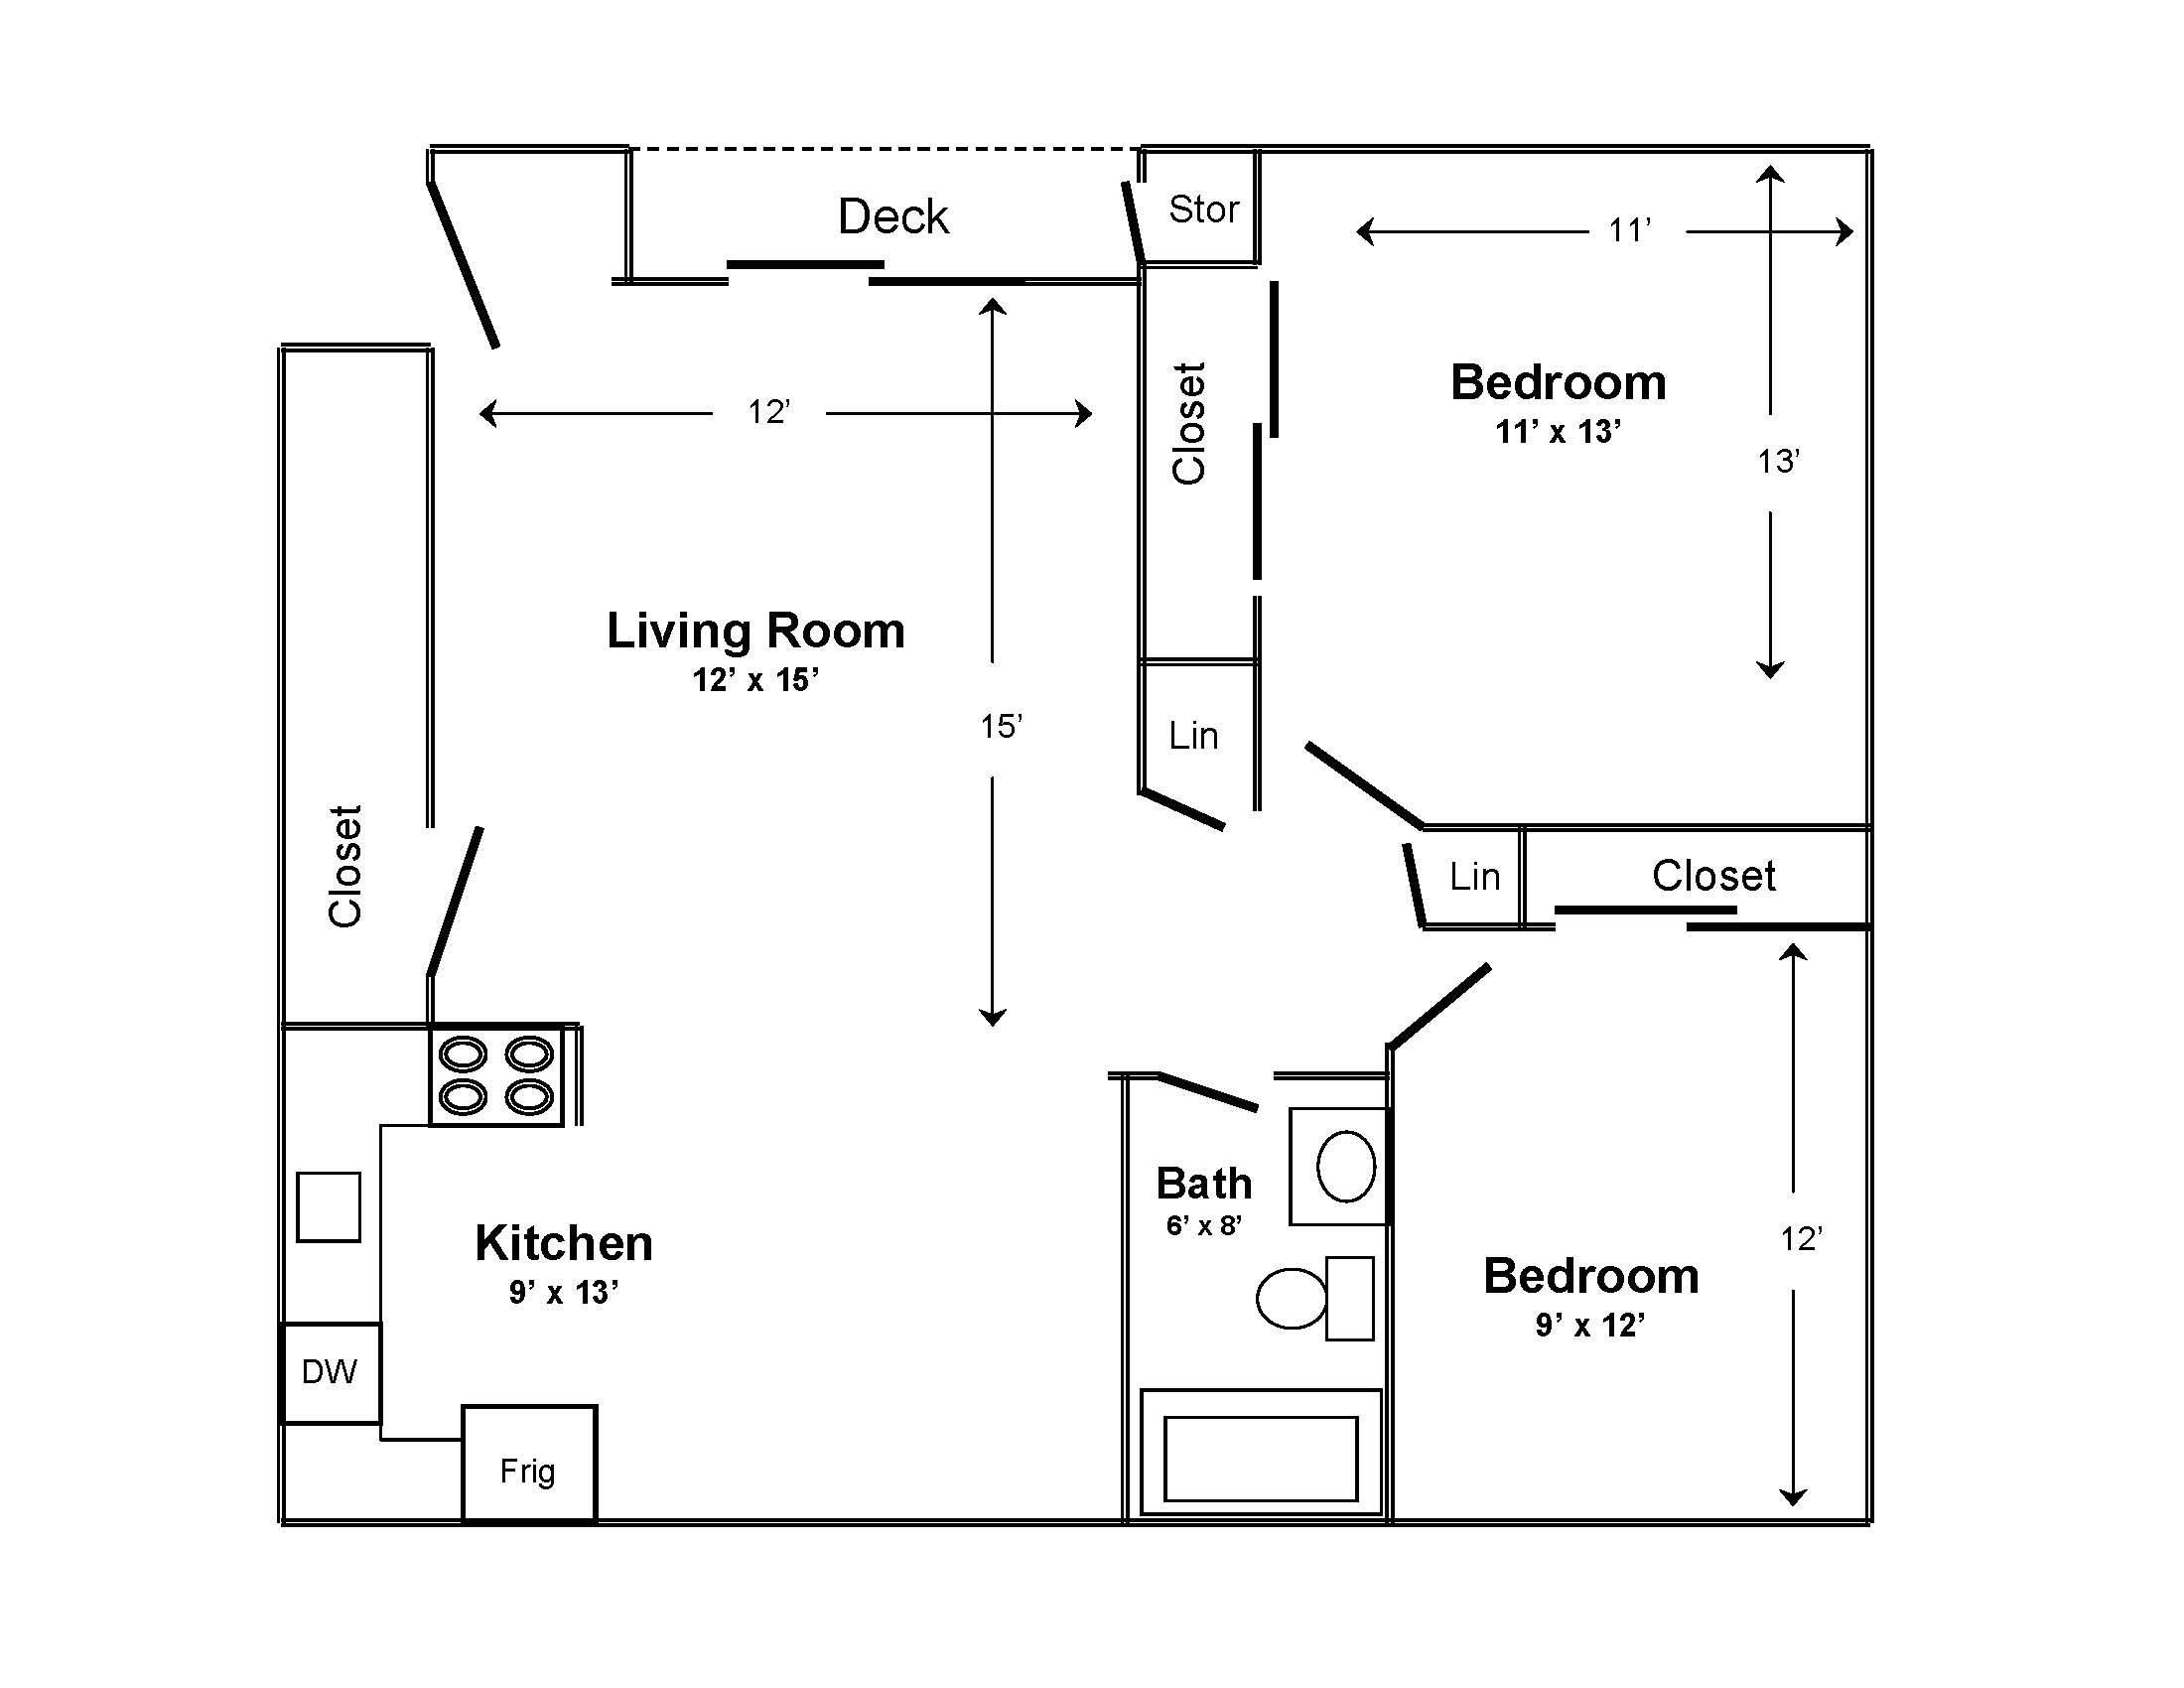 Studio Apartment Examples basement floor plans,basement floor plans examples,basement plans